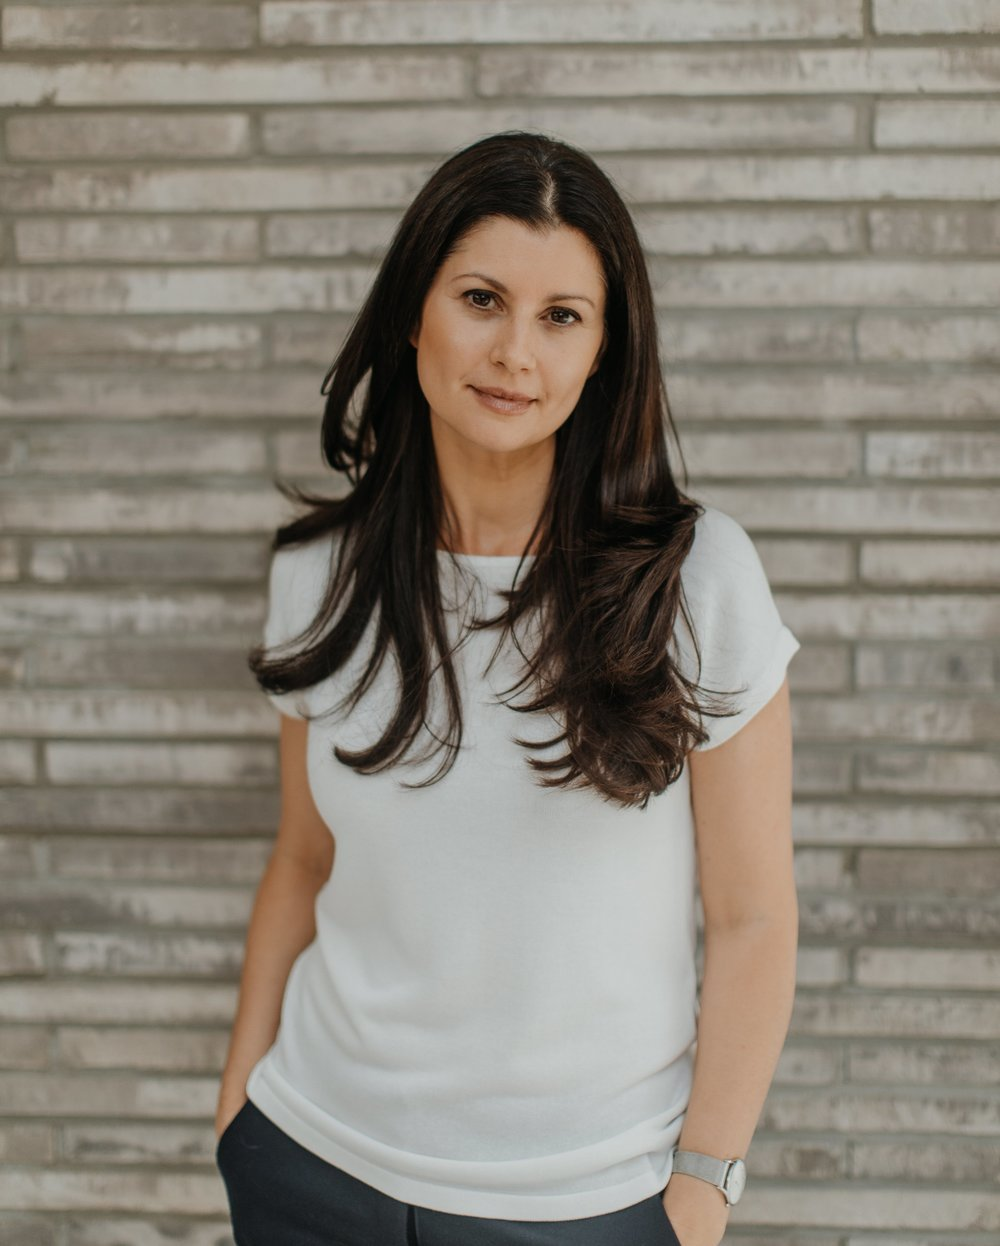 Thalia Pellegrini, founder of Thalia Pellegrini Nutrition, is both a qualified Nutritional Therapist and experienced broadcast journalist who worked for many years with BBC and other mainstream broadcasters.